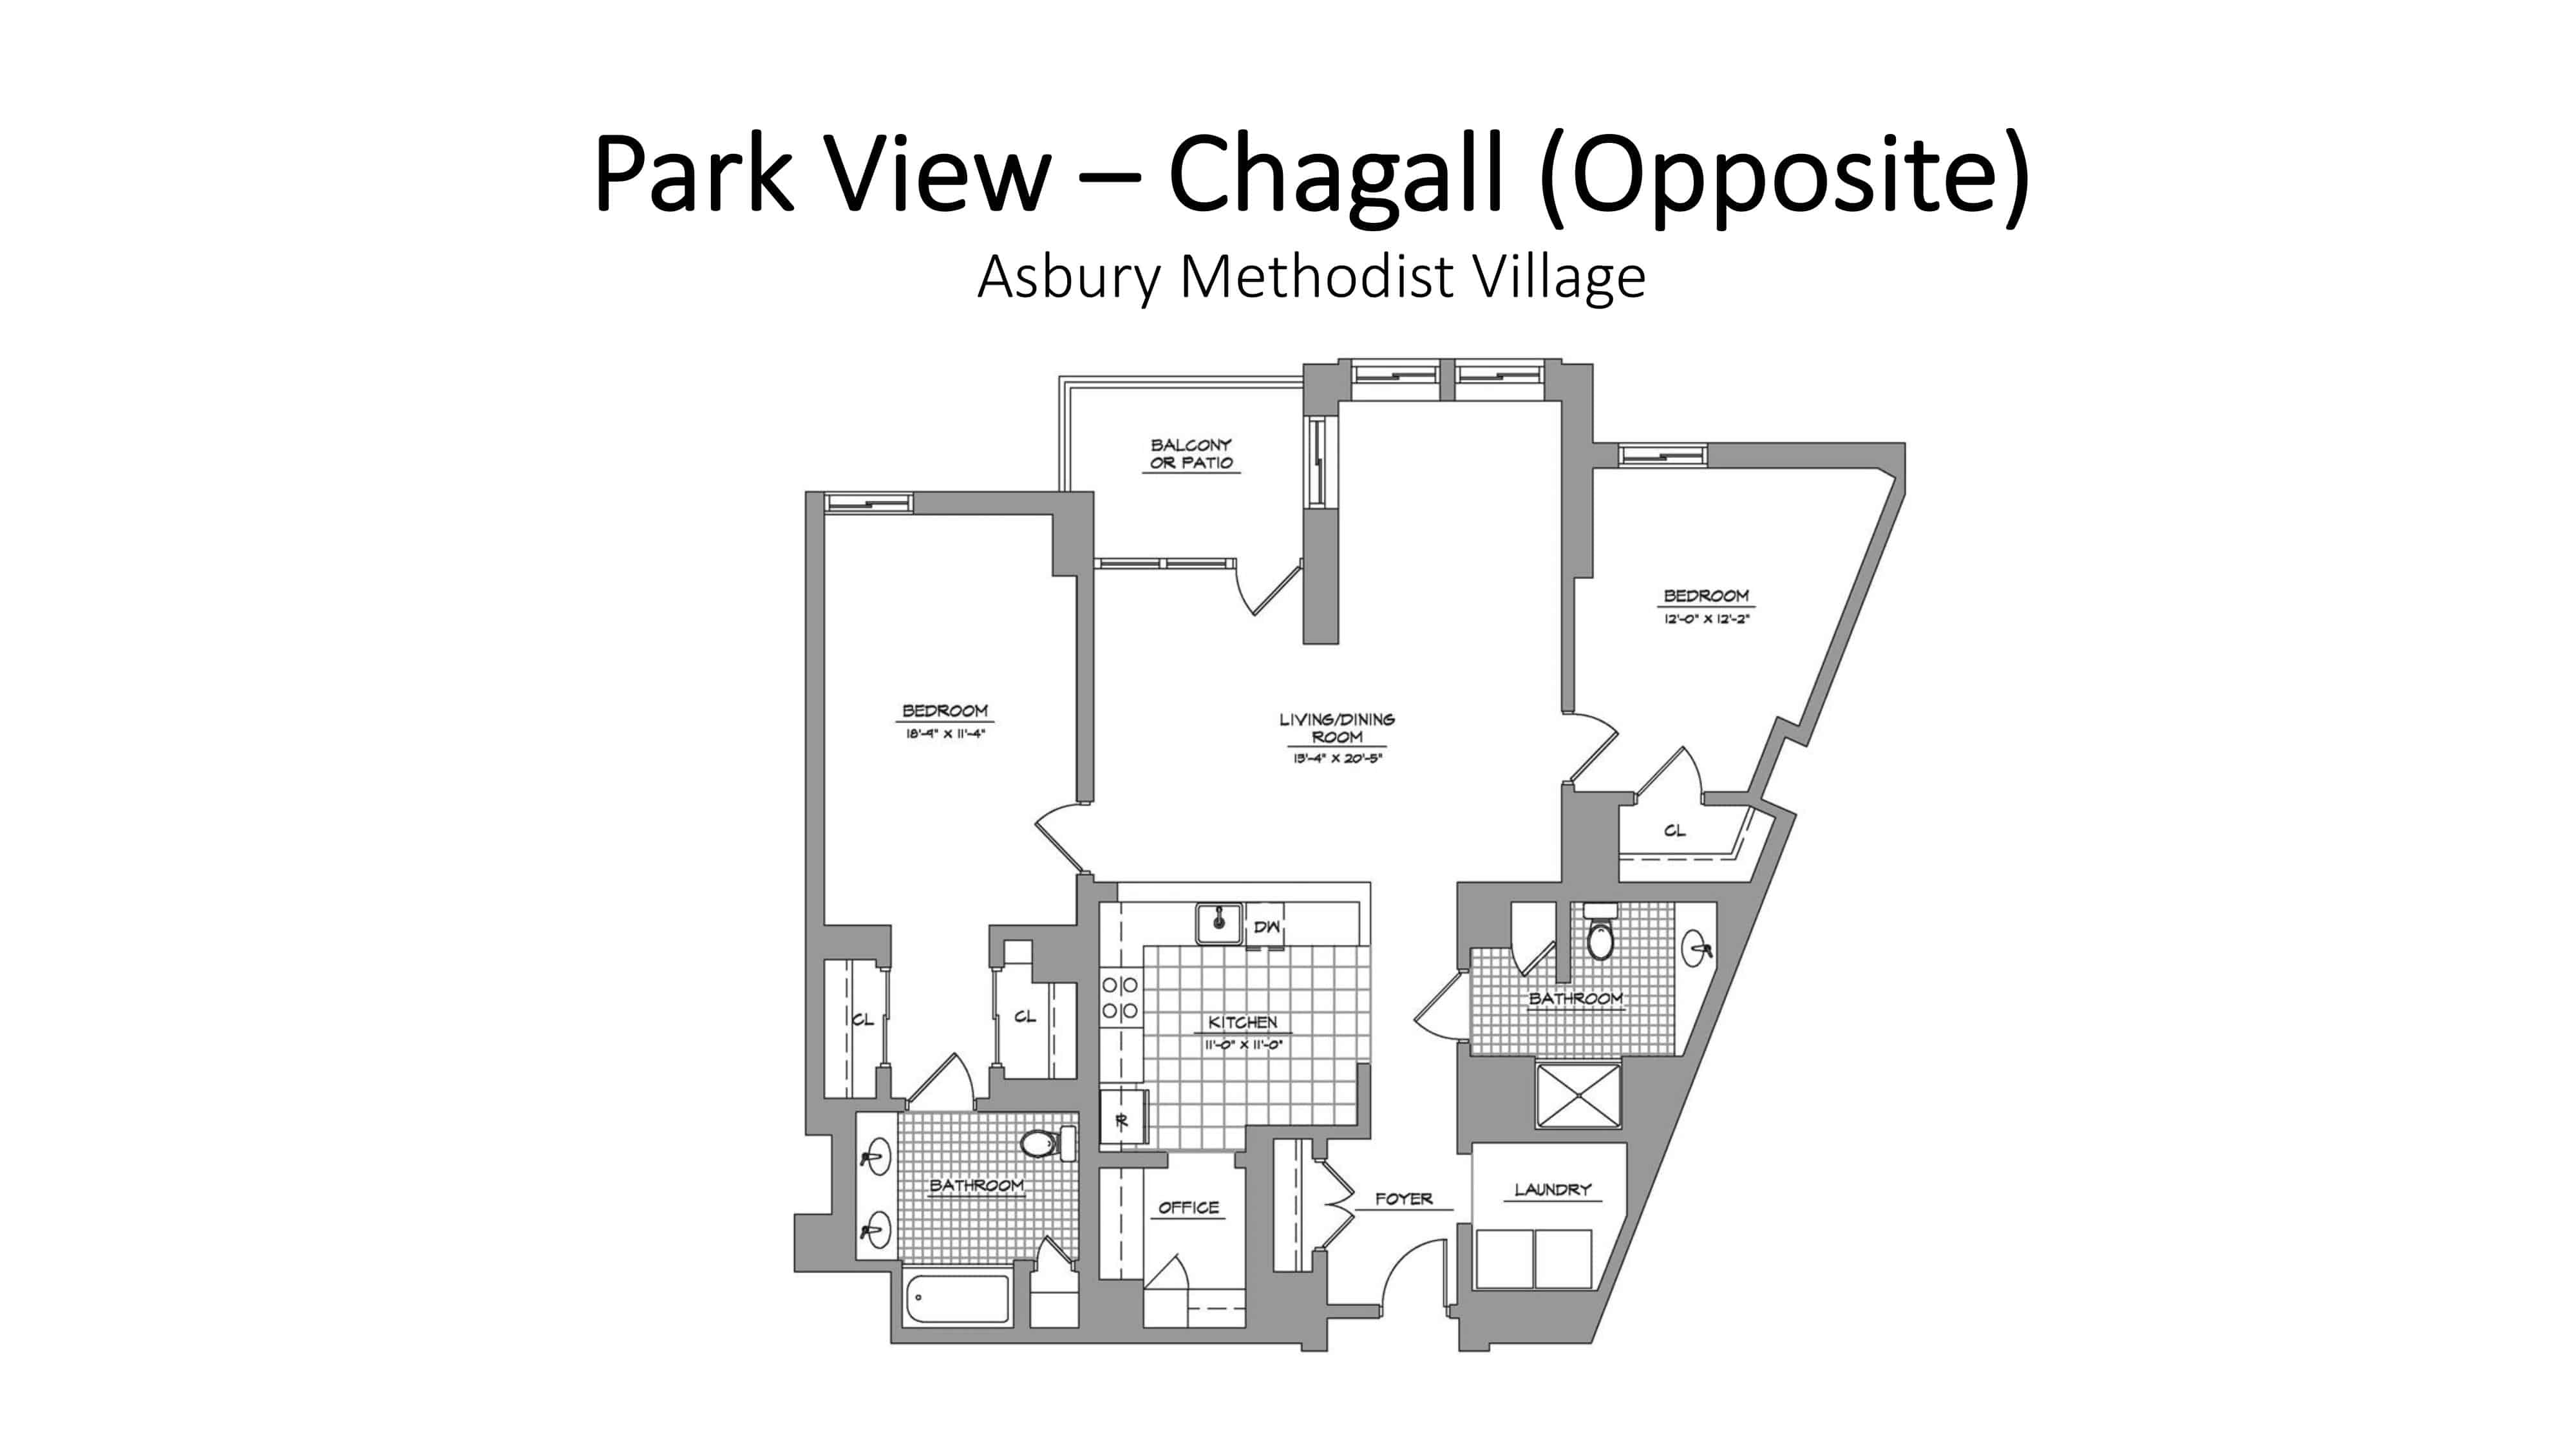 Park_View_Chagall_Opposite